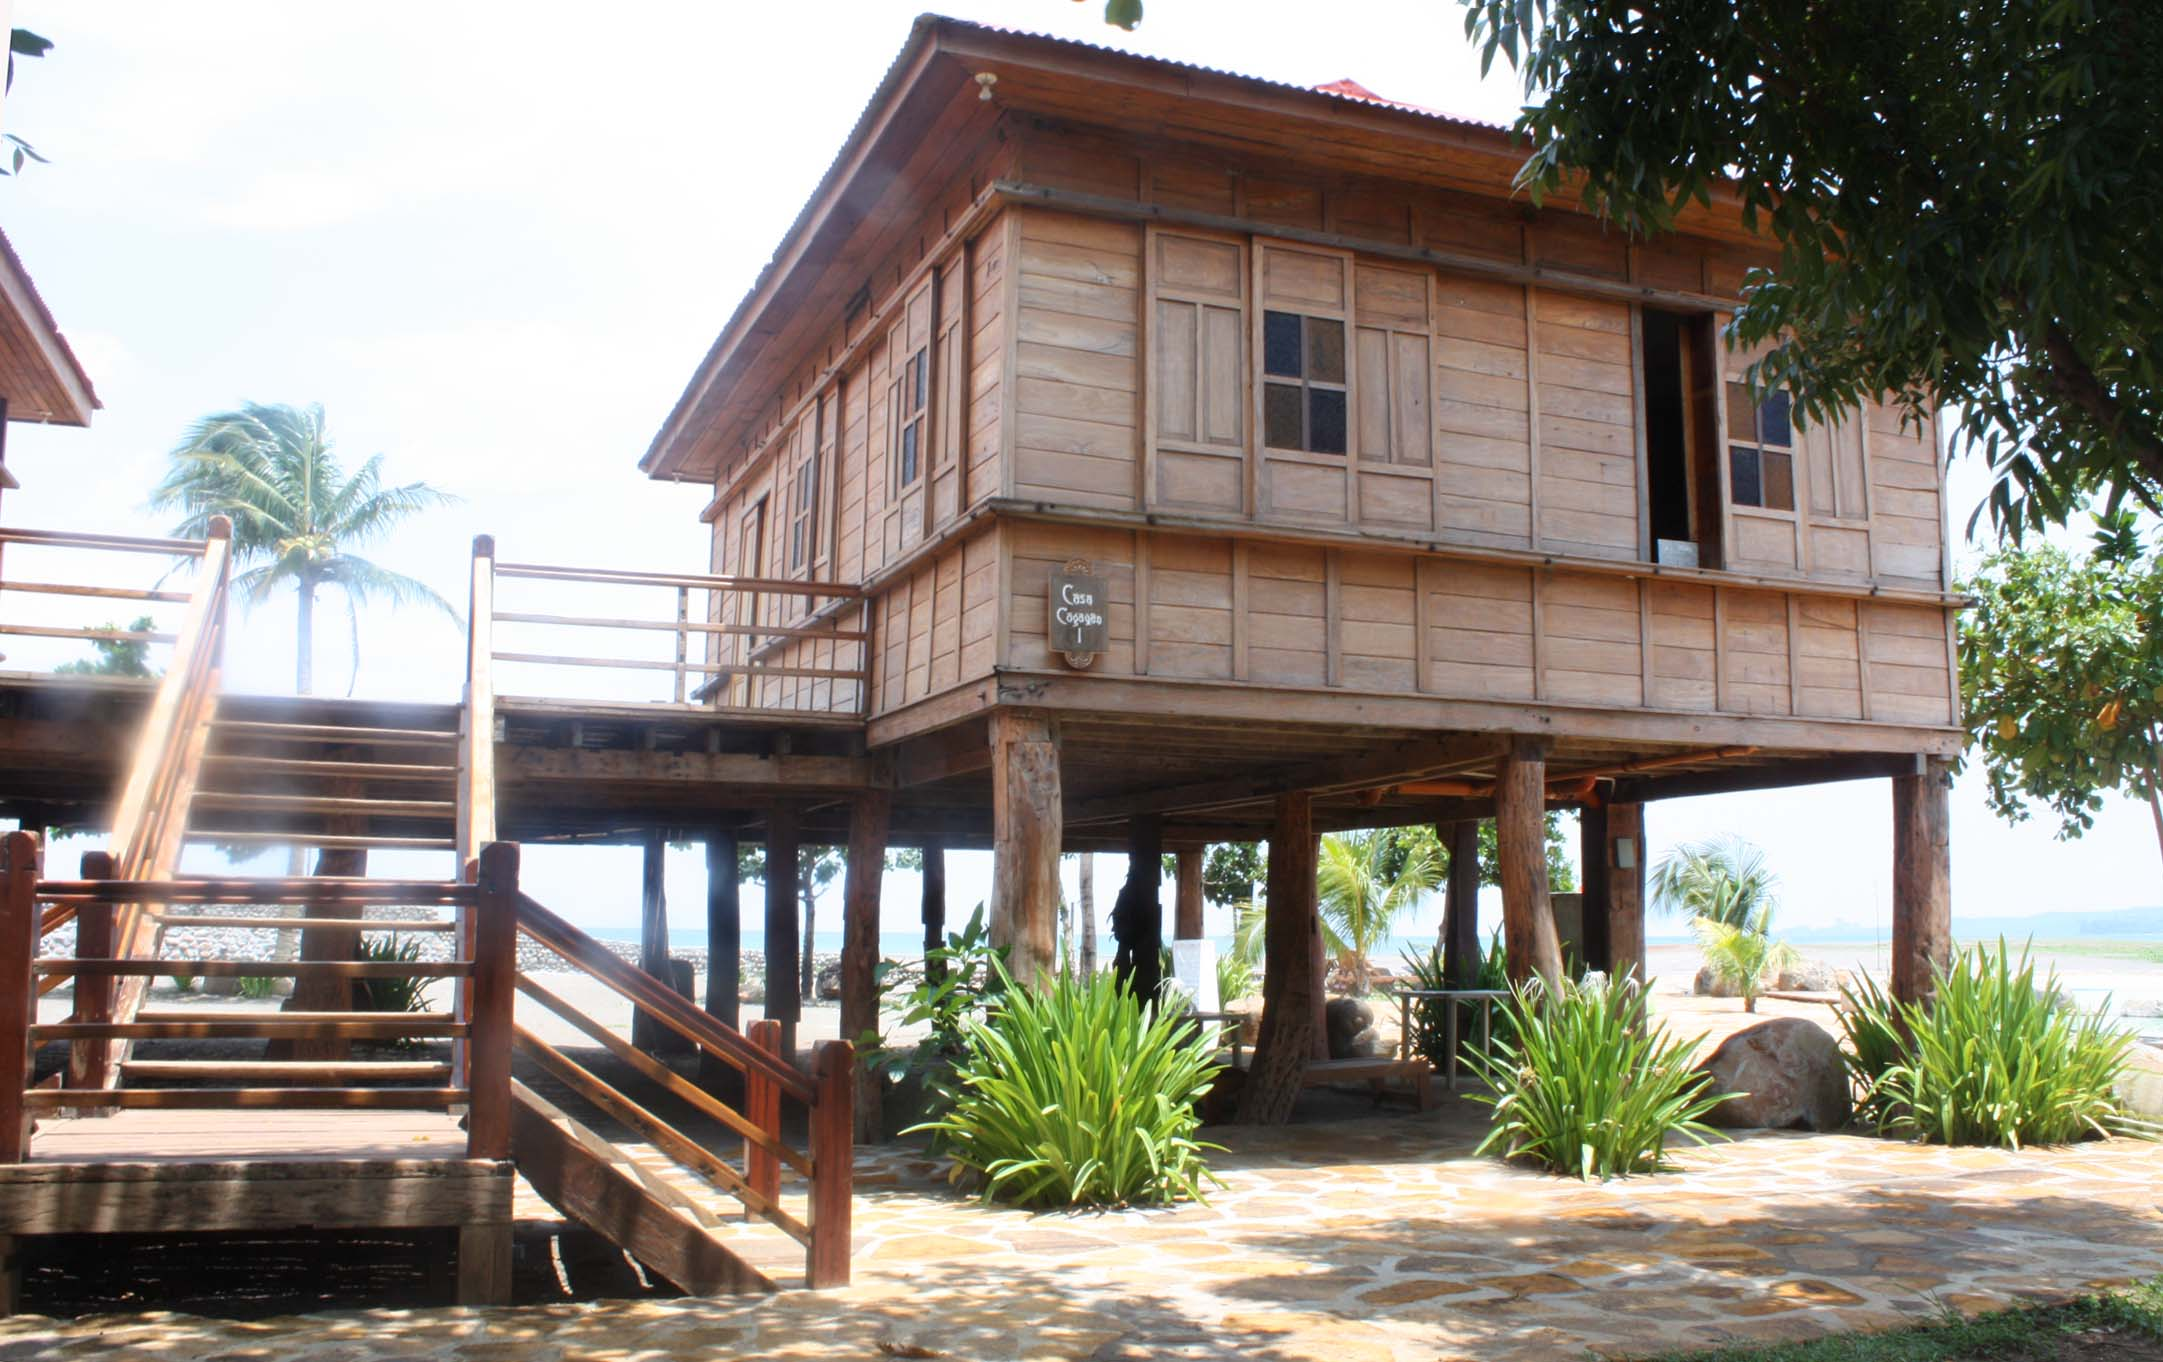 Filipino Houses http://guitarfool.com/20/old-filipino-houses